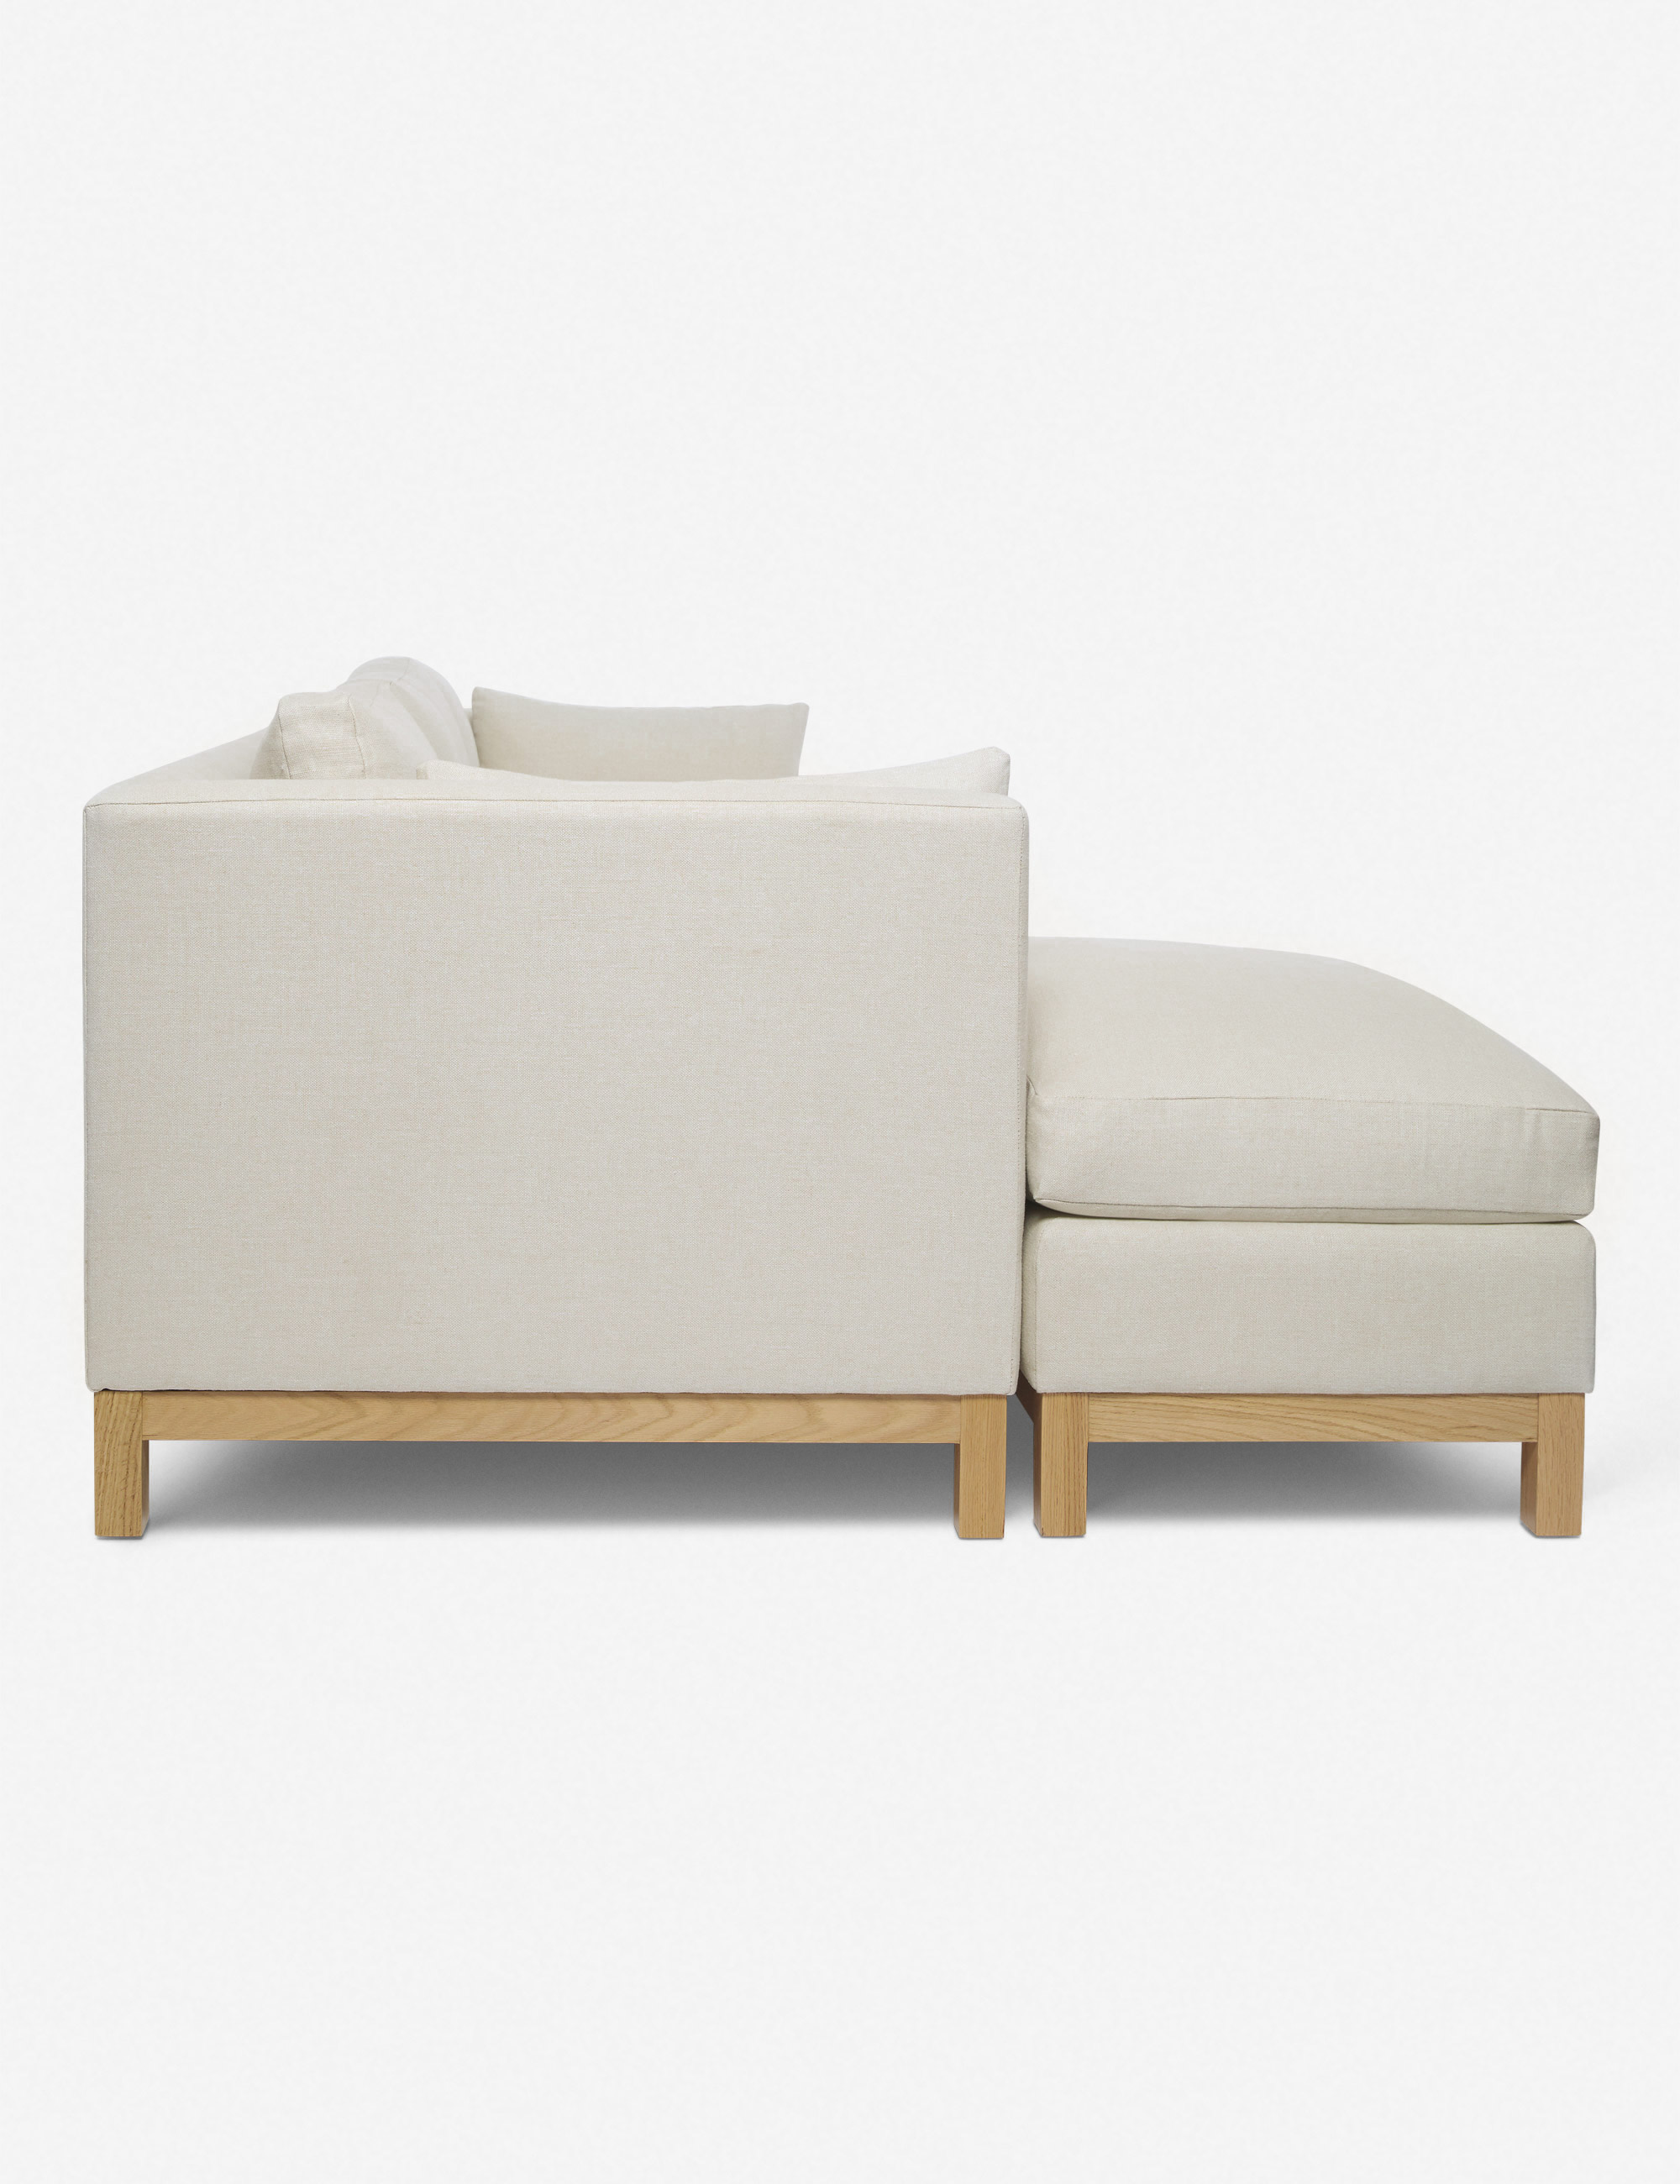 GINNY_MACDONALD_Hollingworth-Sectional-LAF-Linen-Natural-3